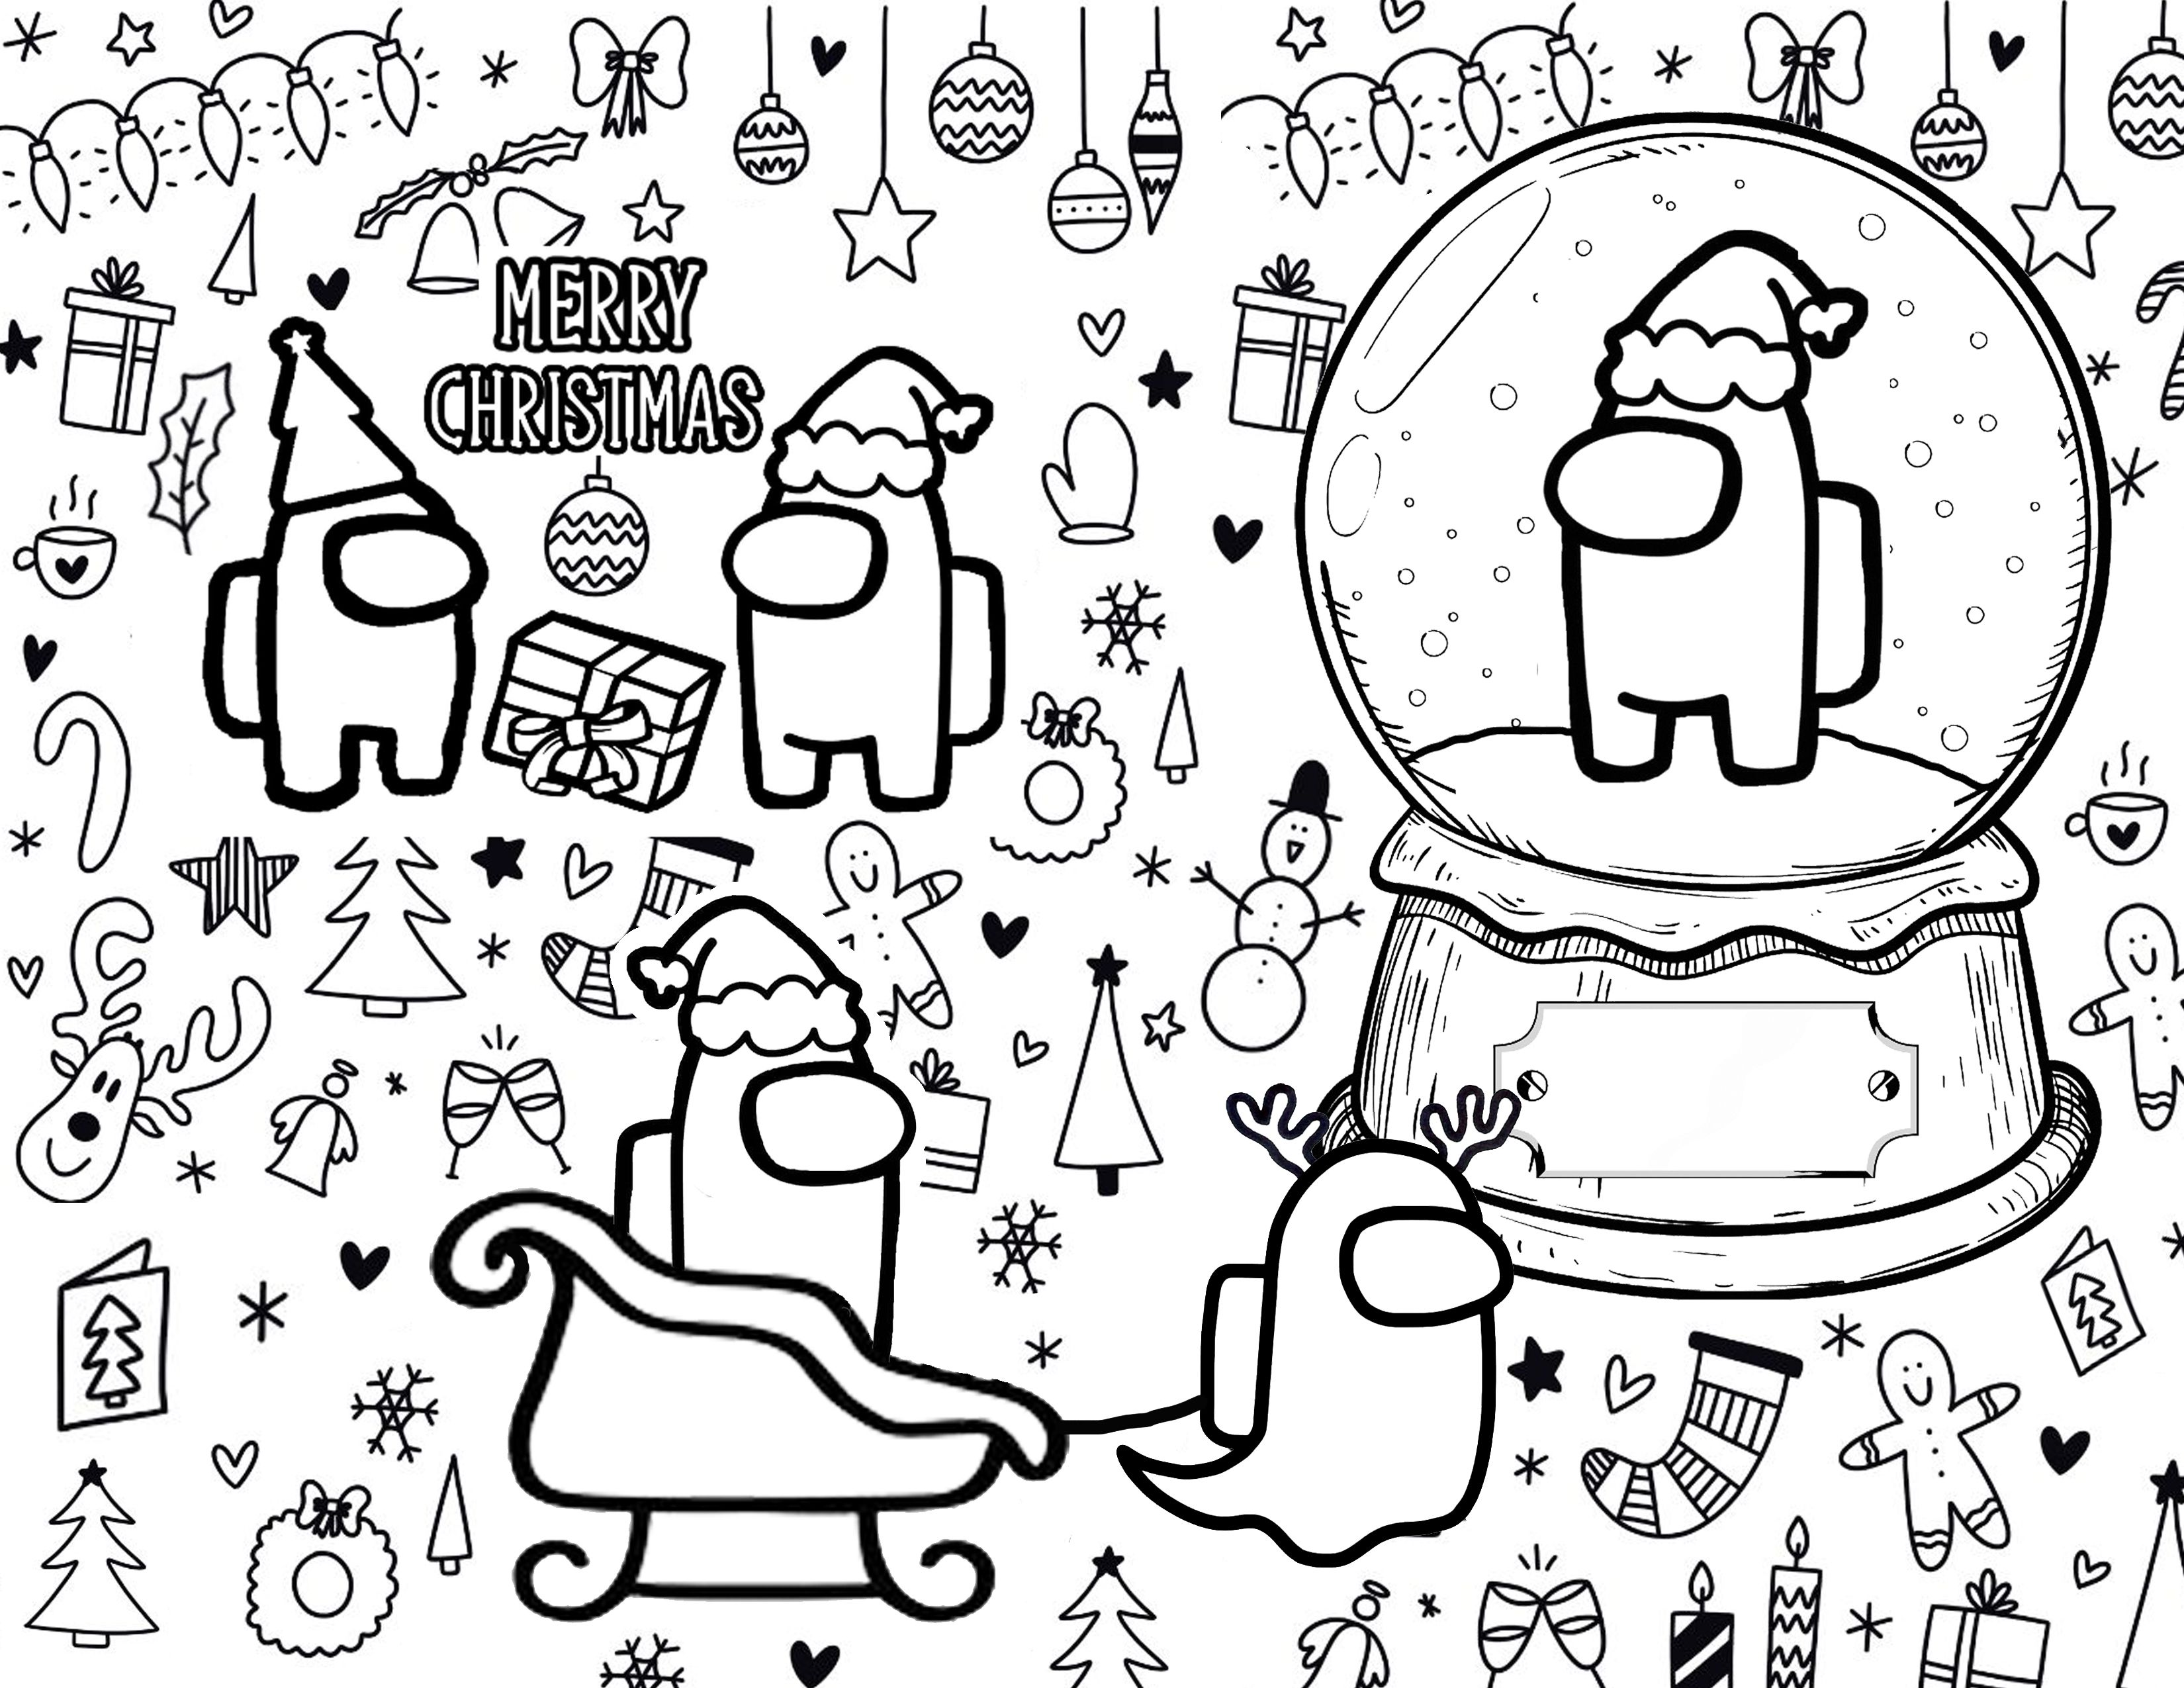 Among Us Coloring Page Merry Susmas Coloring Pages Christmas Coloring Sheets Christmas Coloring Pages